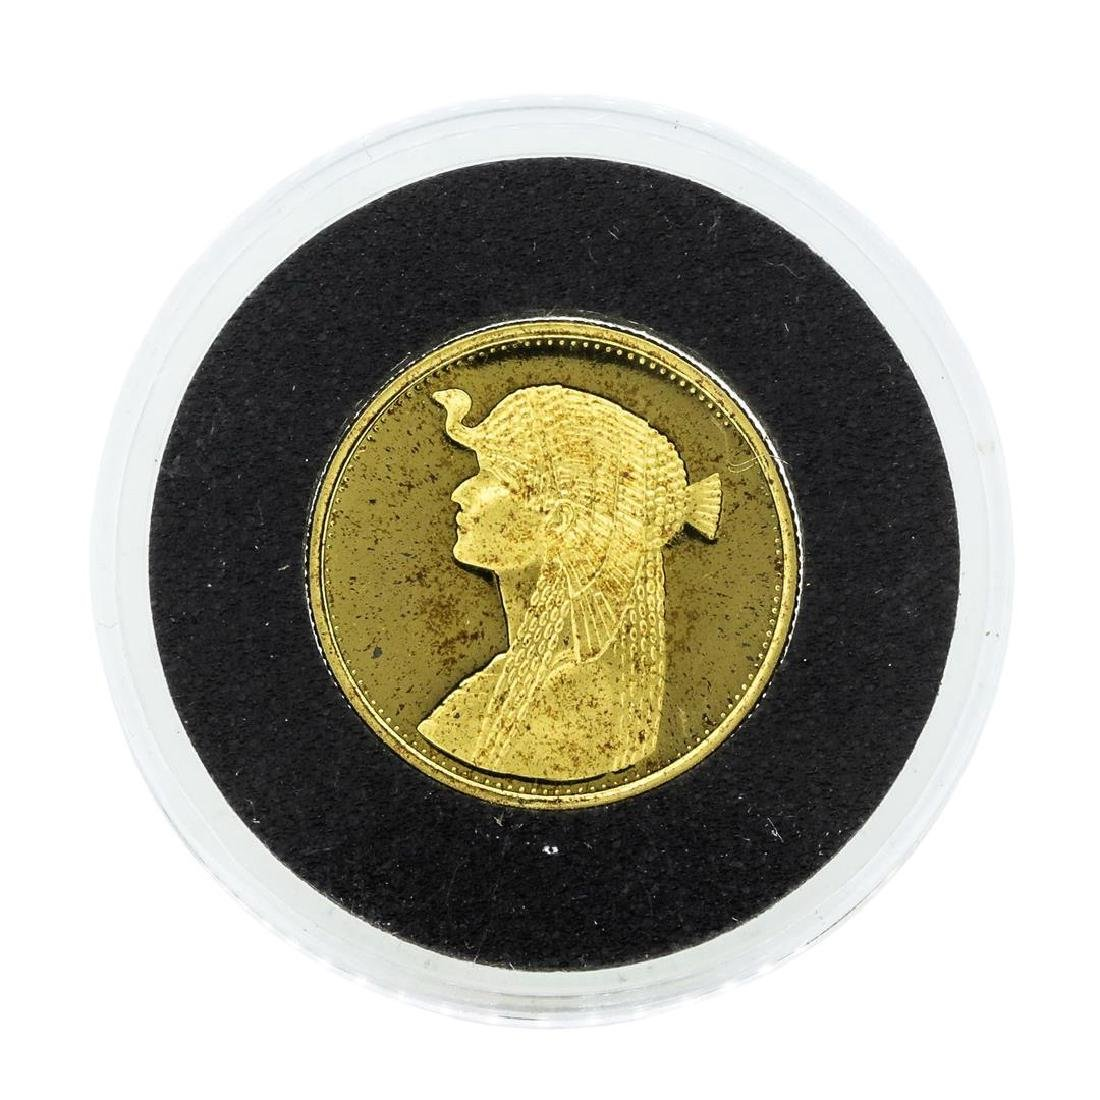 1993 1/4 oz. Egypt 50 Pound Gold Proof Coin